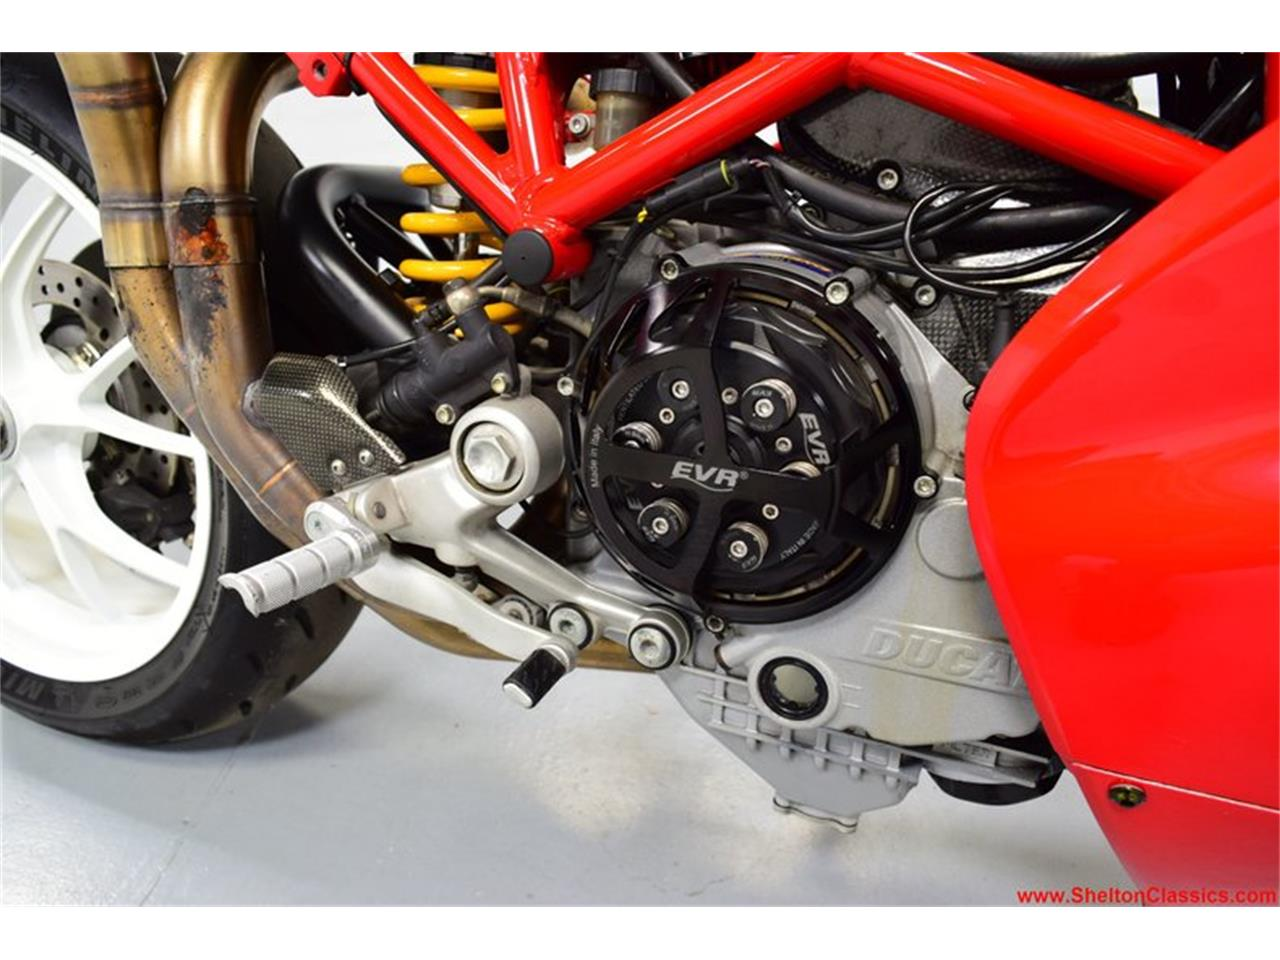 Large Picture of 2007 Ducati Monster - $9,995.00 - PY15